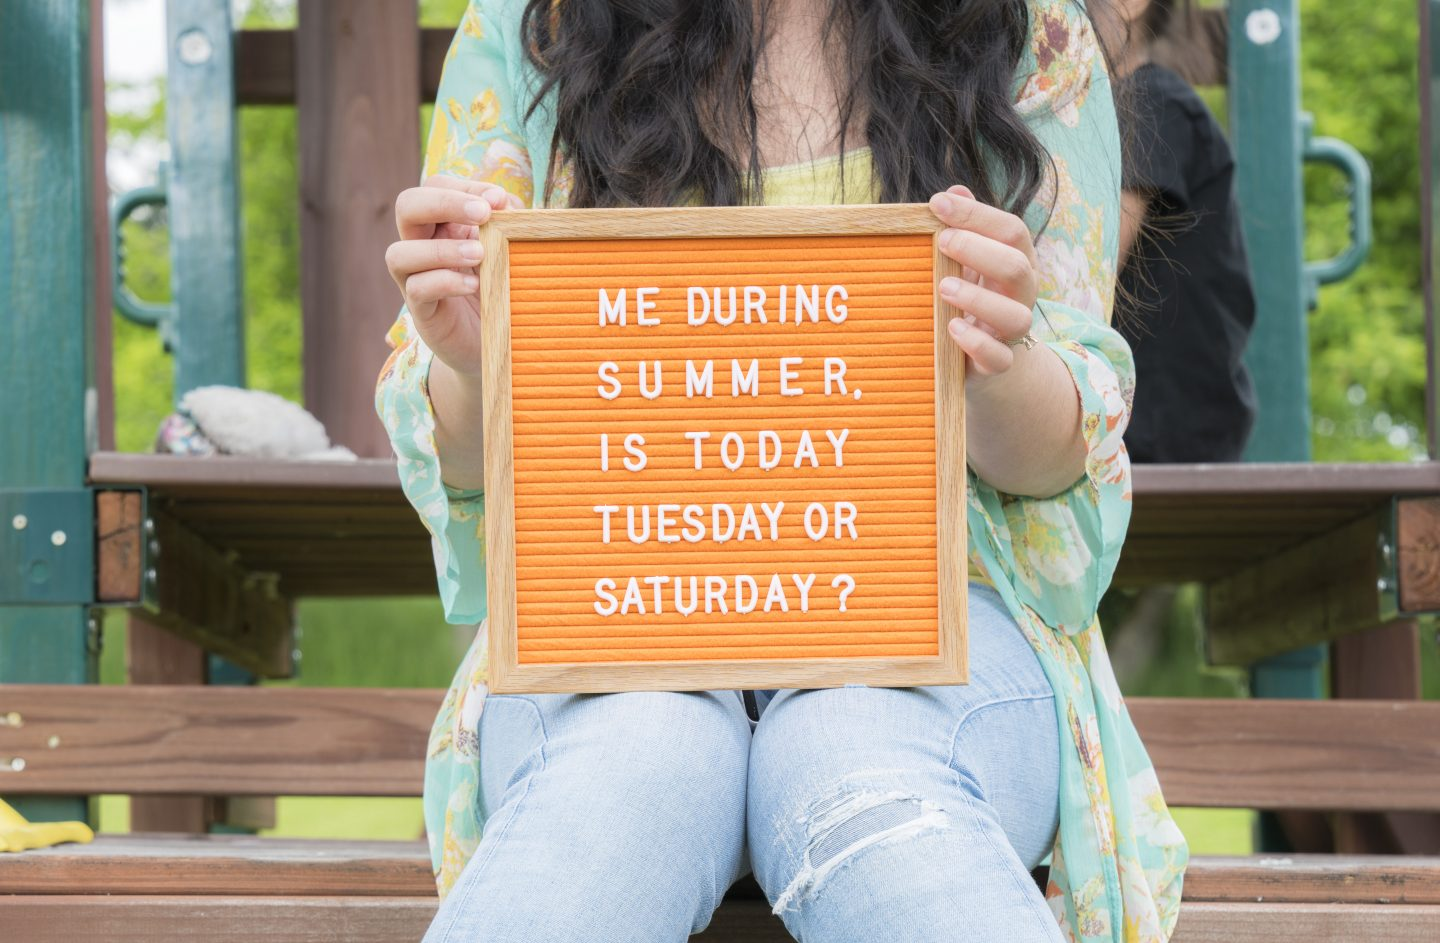 felt like sharing neon orange felt letter board